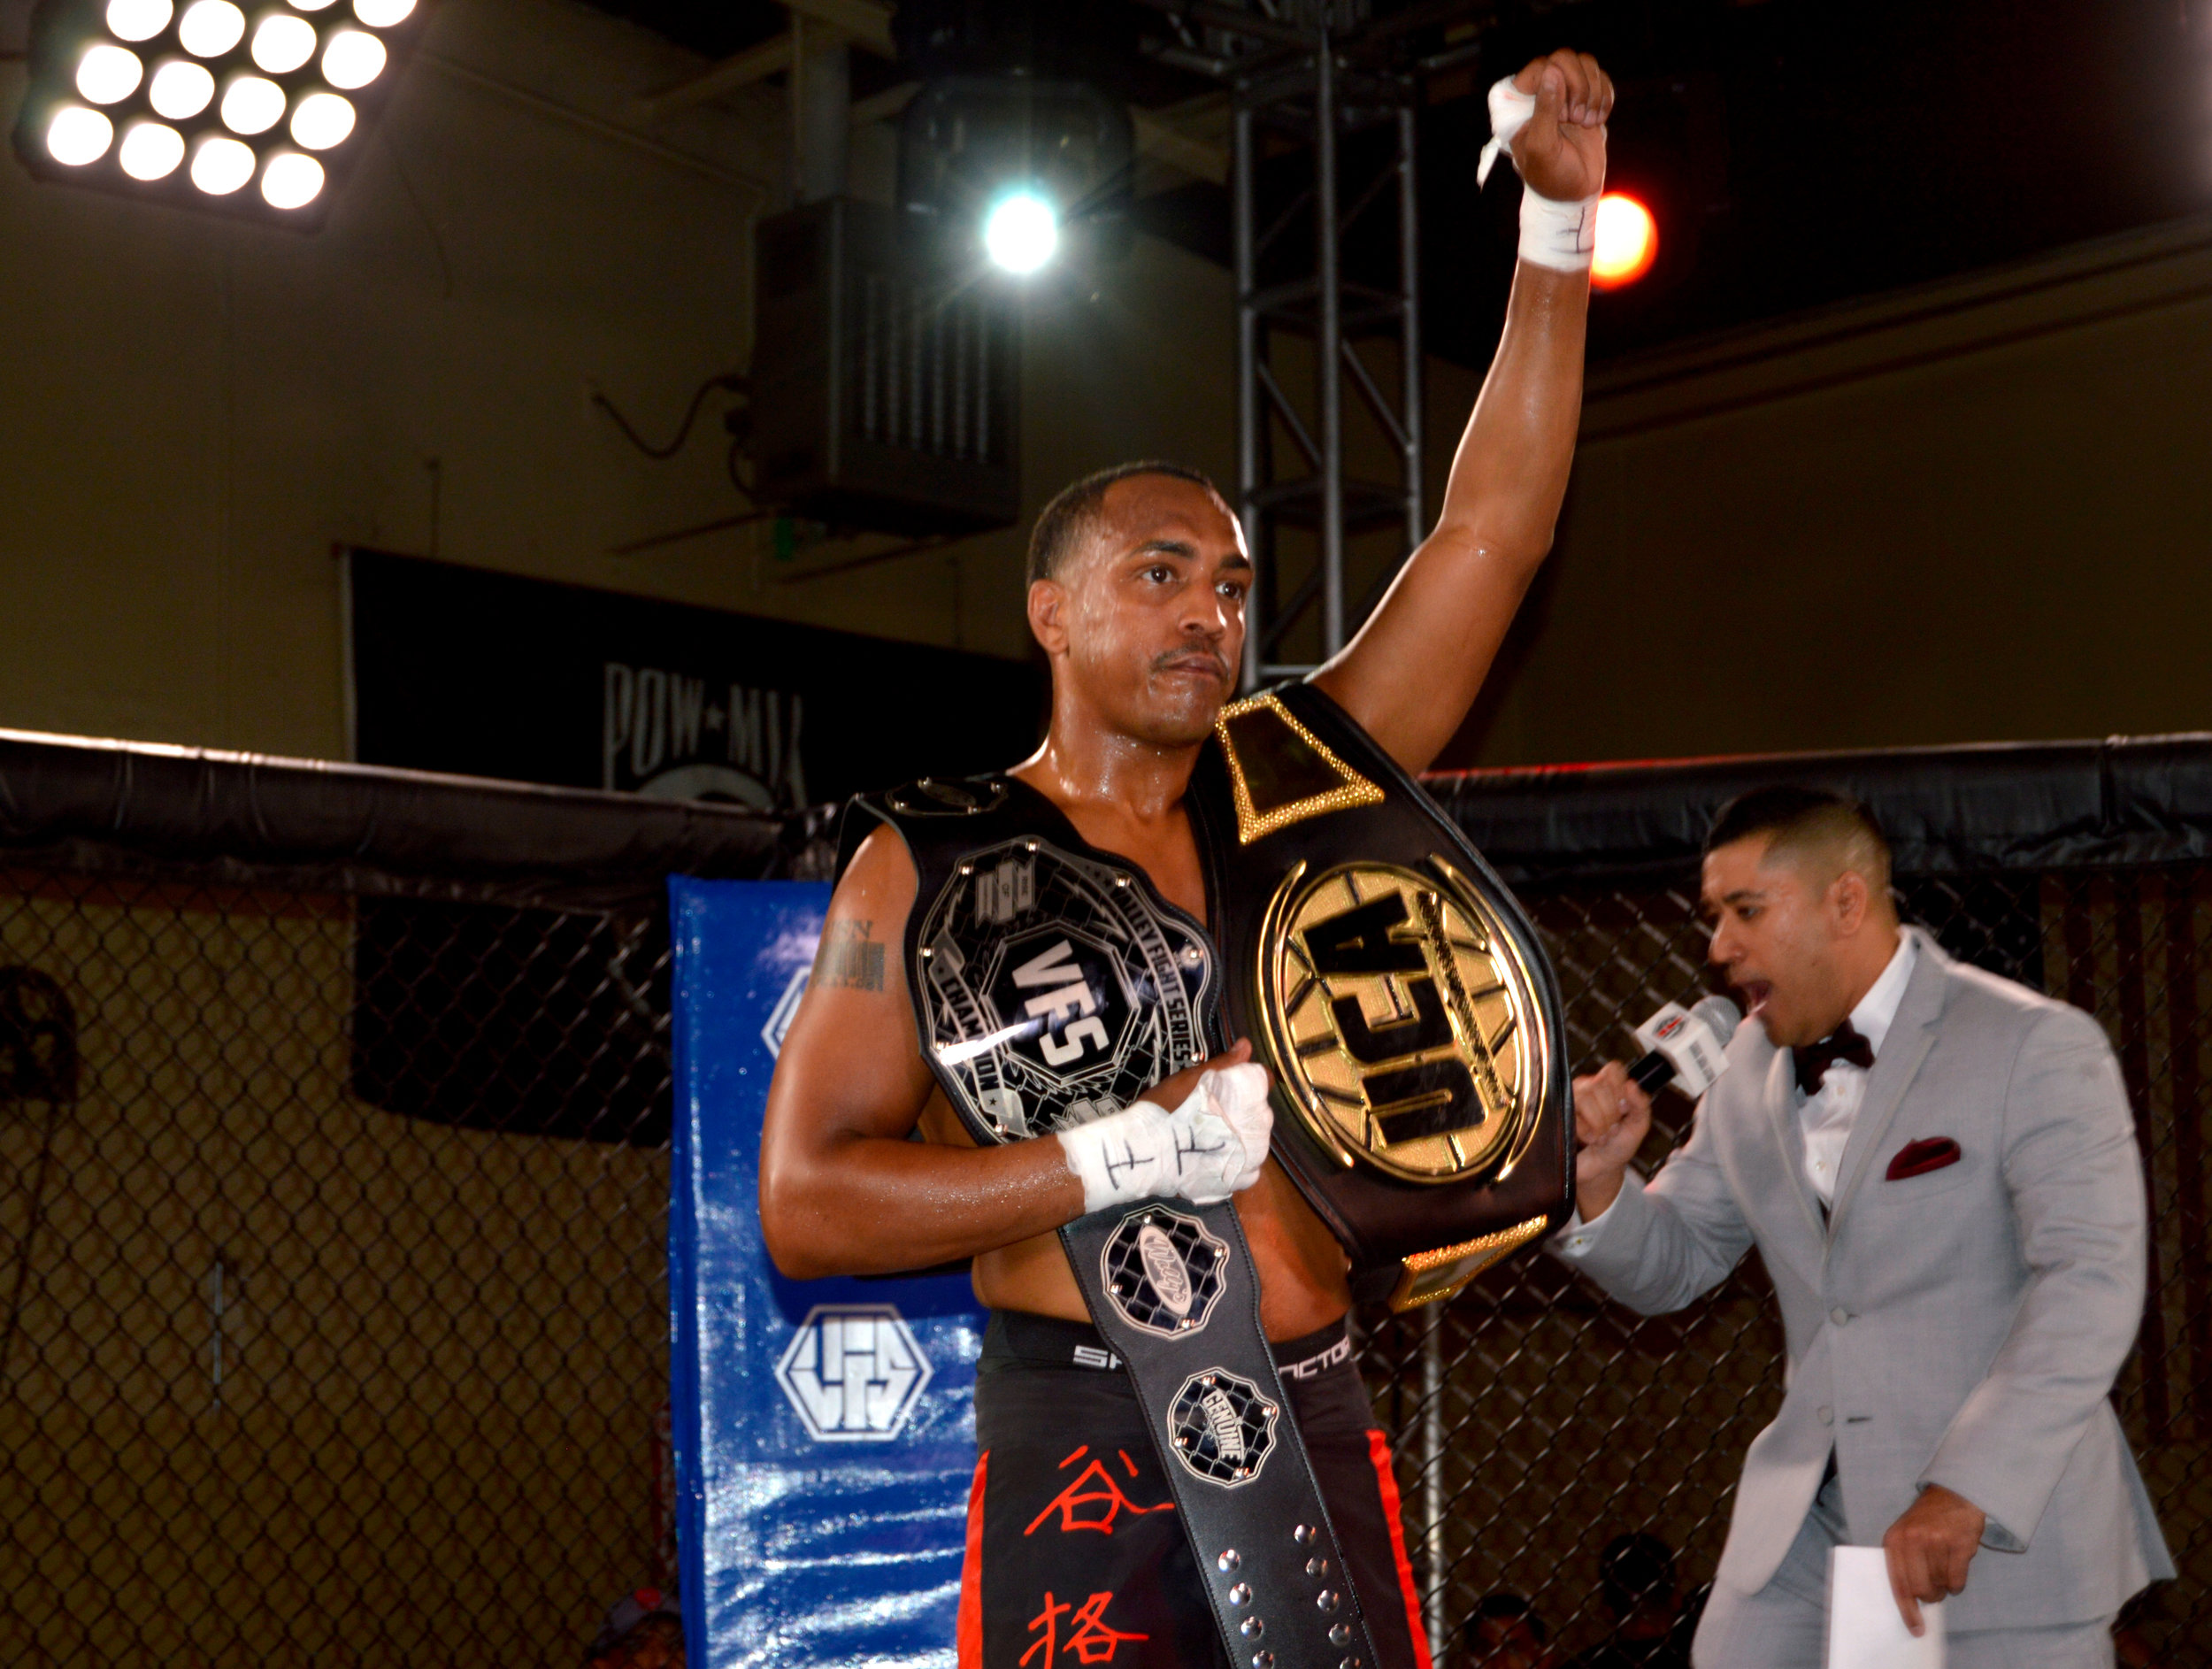 """Sterling """"Money"""" Ingram becomes double-champion, capturing the VFS Lightweight Title and remaining undefeated"""